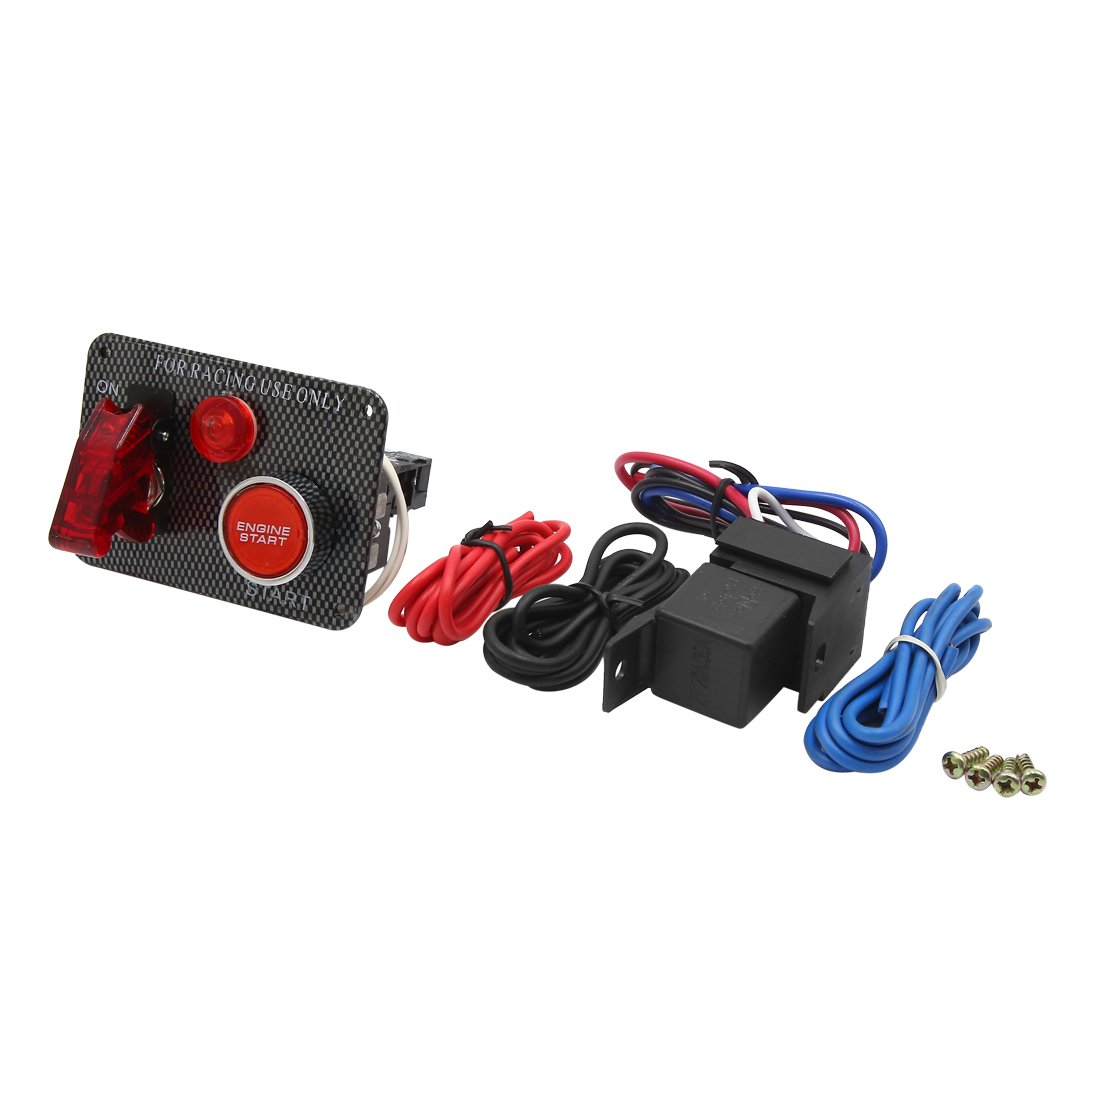 Uxcell a18041900ux0345 Motorcycle Switch by uxcell